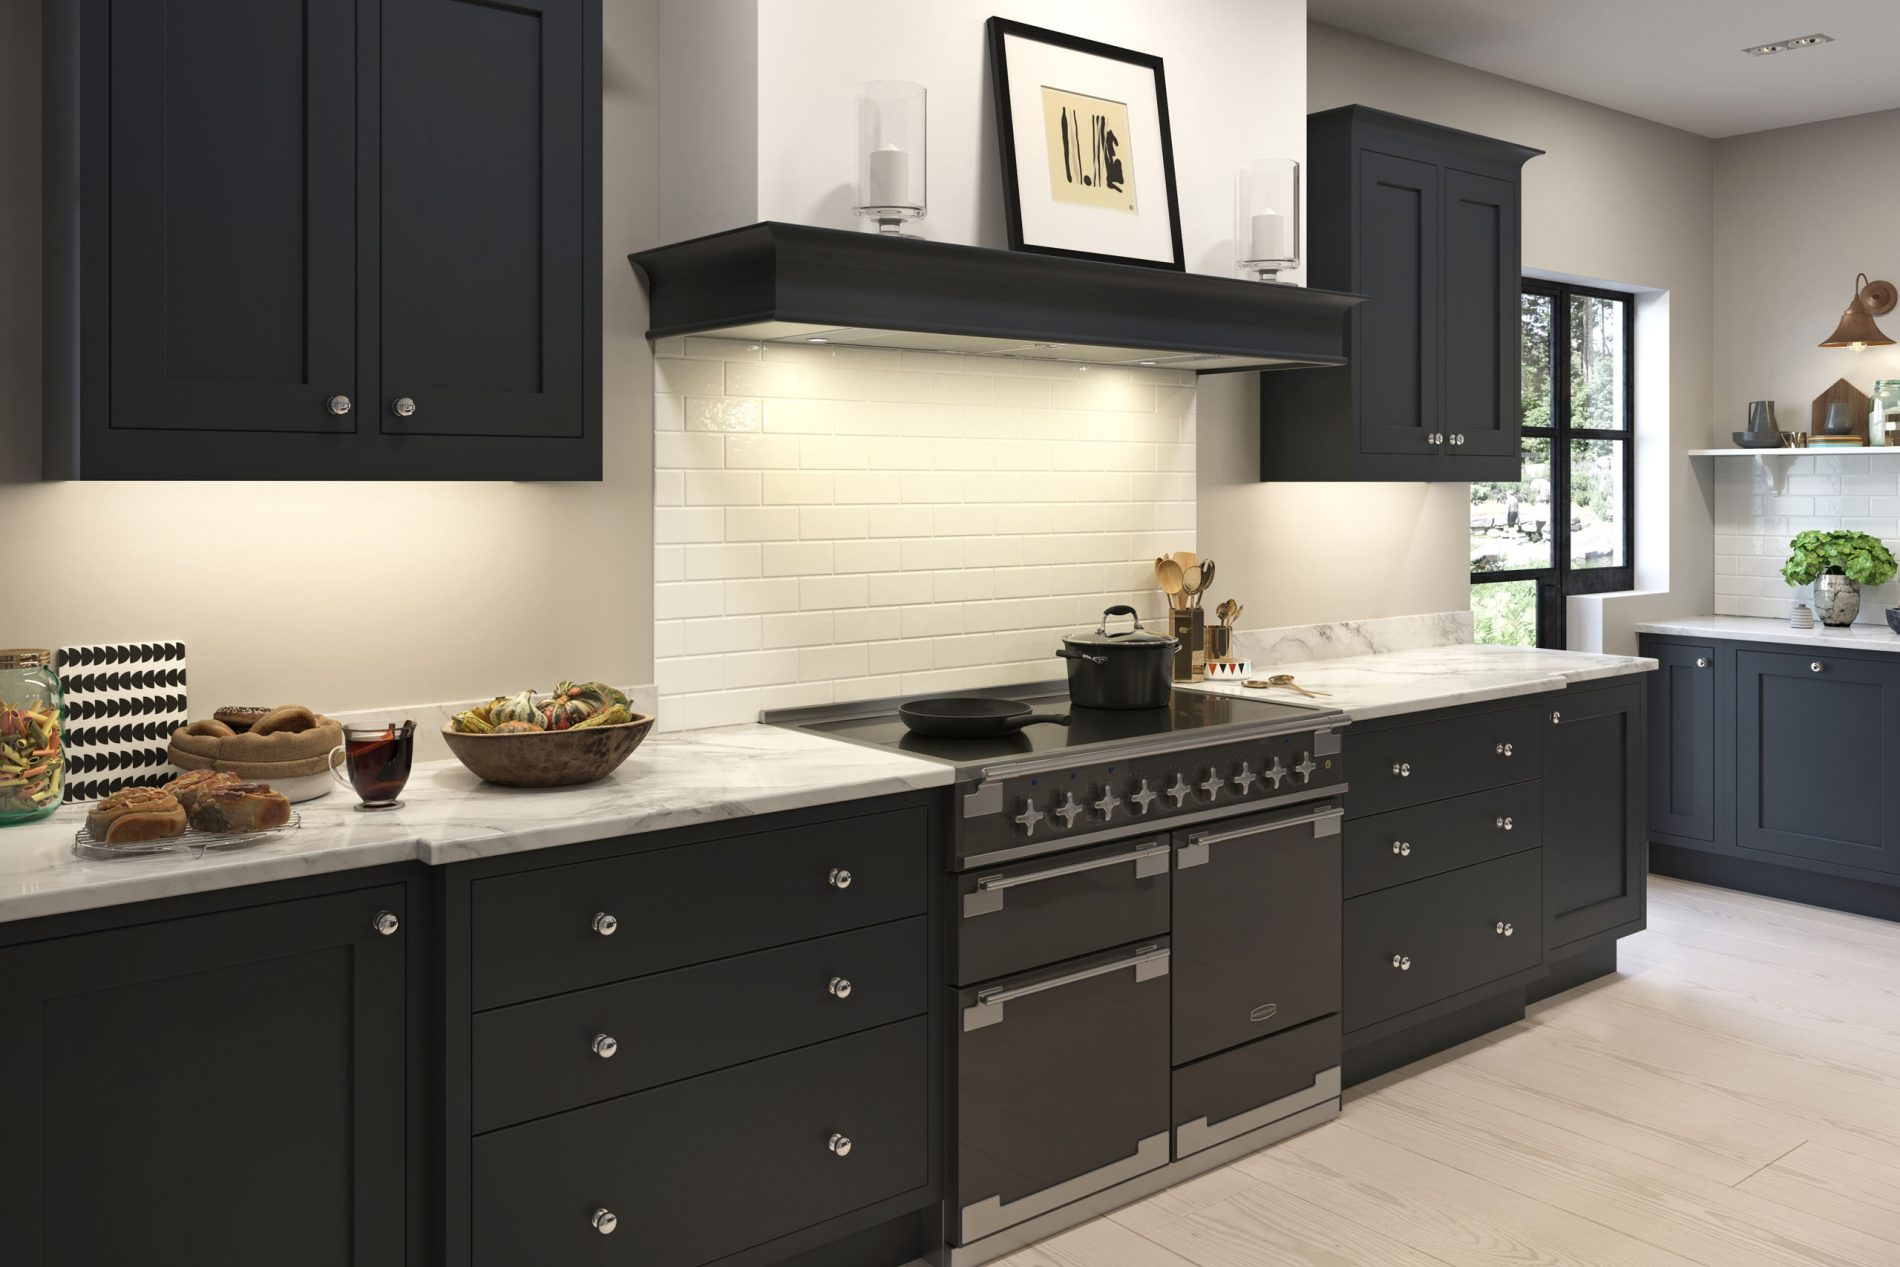 Brampton kitchen at Crestwood of Lymington